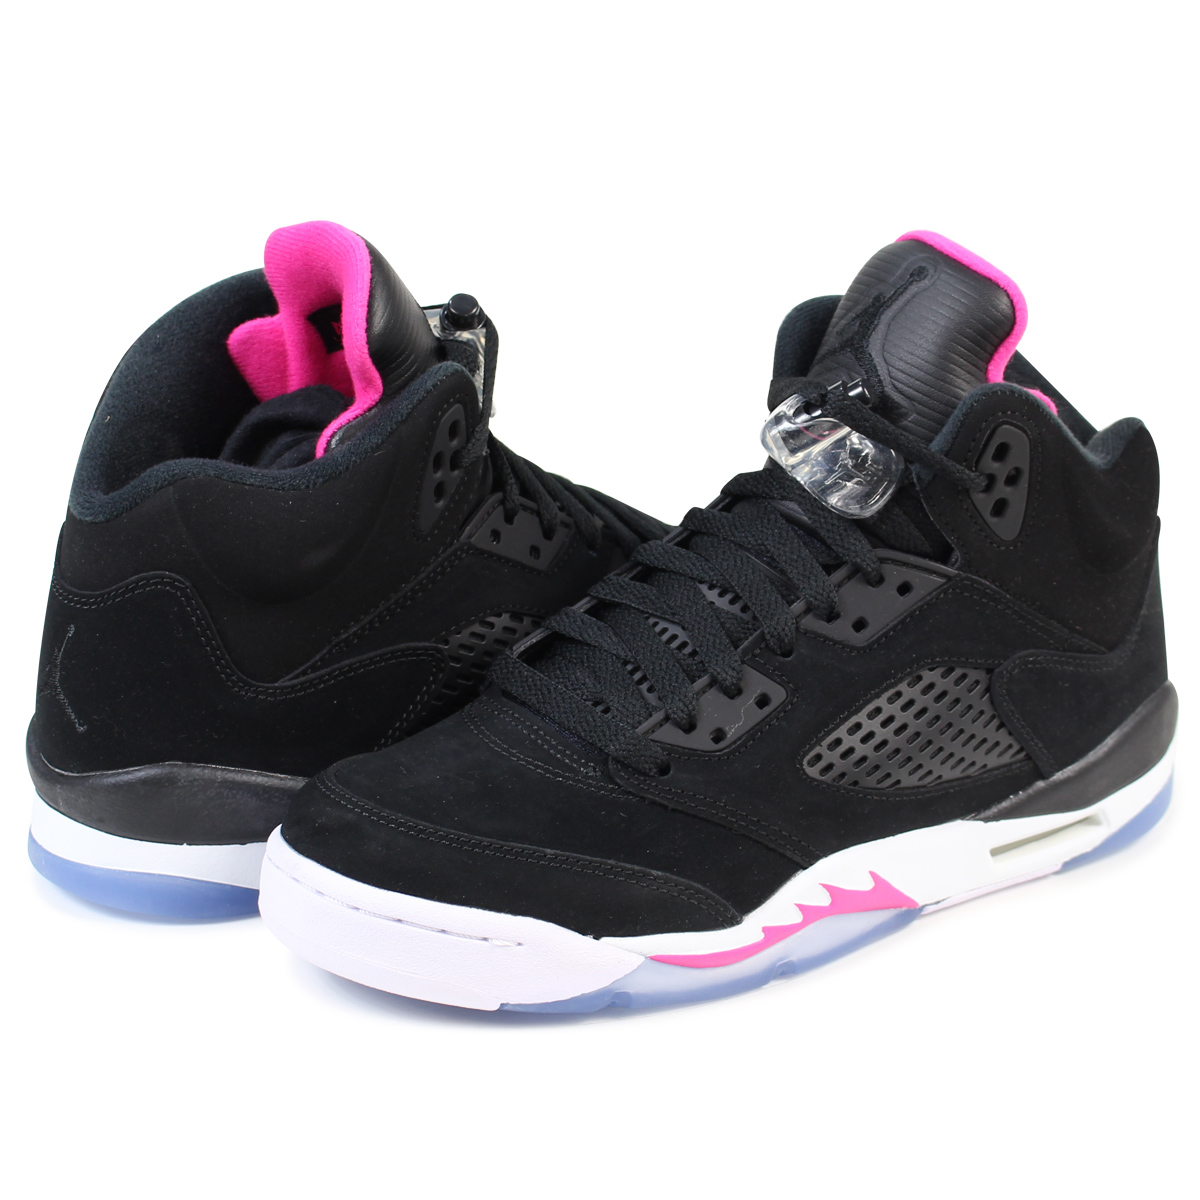 bliżej na szczegółowy wygląd kup dobrze NIKE AIR JORDAN 5 RETRO GG Nike Air Jordan 5 nostalgic lady's sneakers  440,892-029 shoes black [load planned Shinnyu load in reservation product  10/5 ...